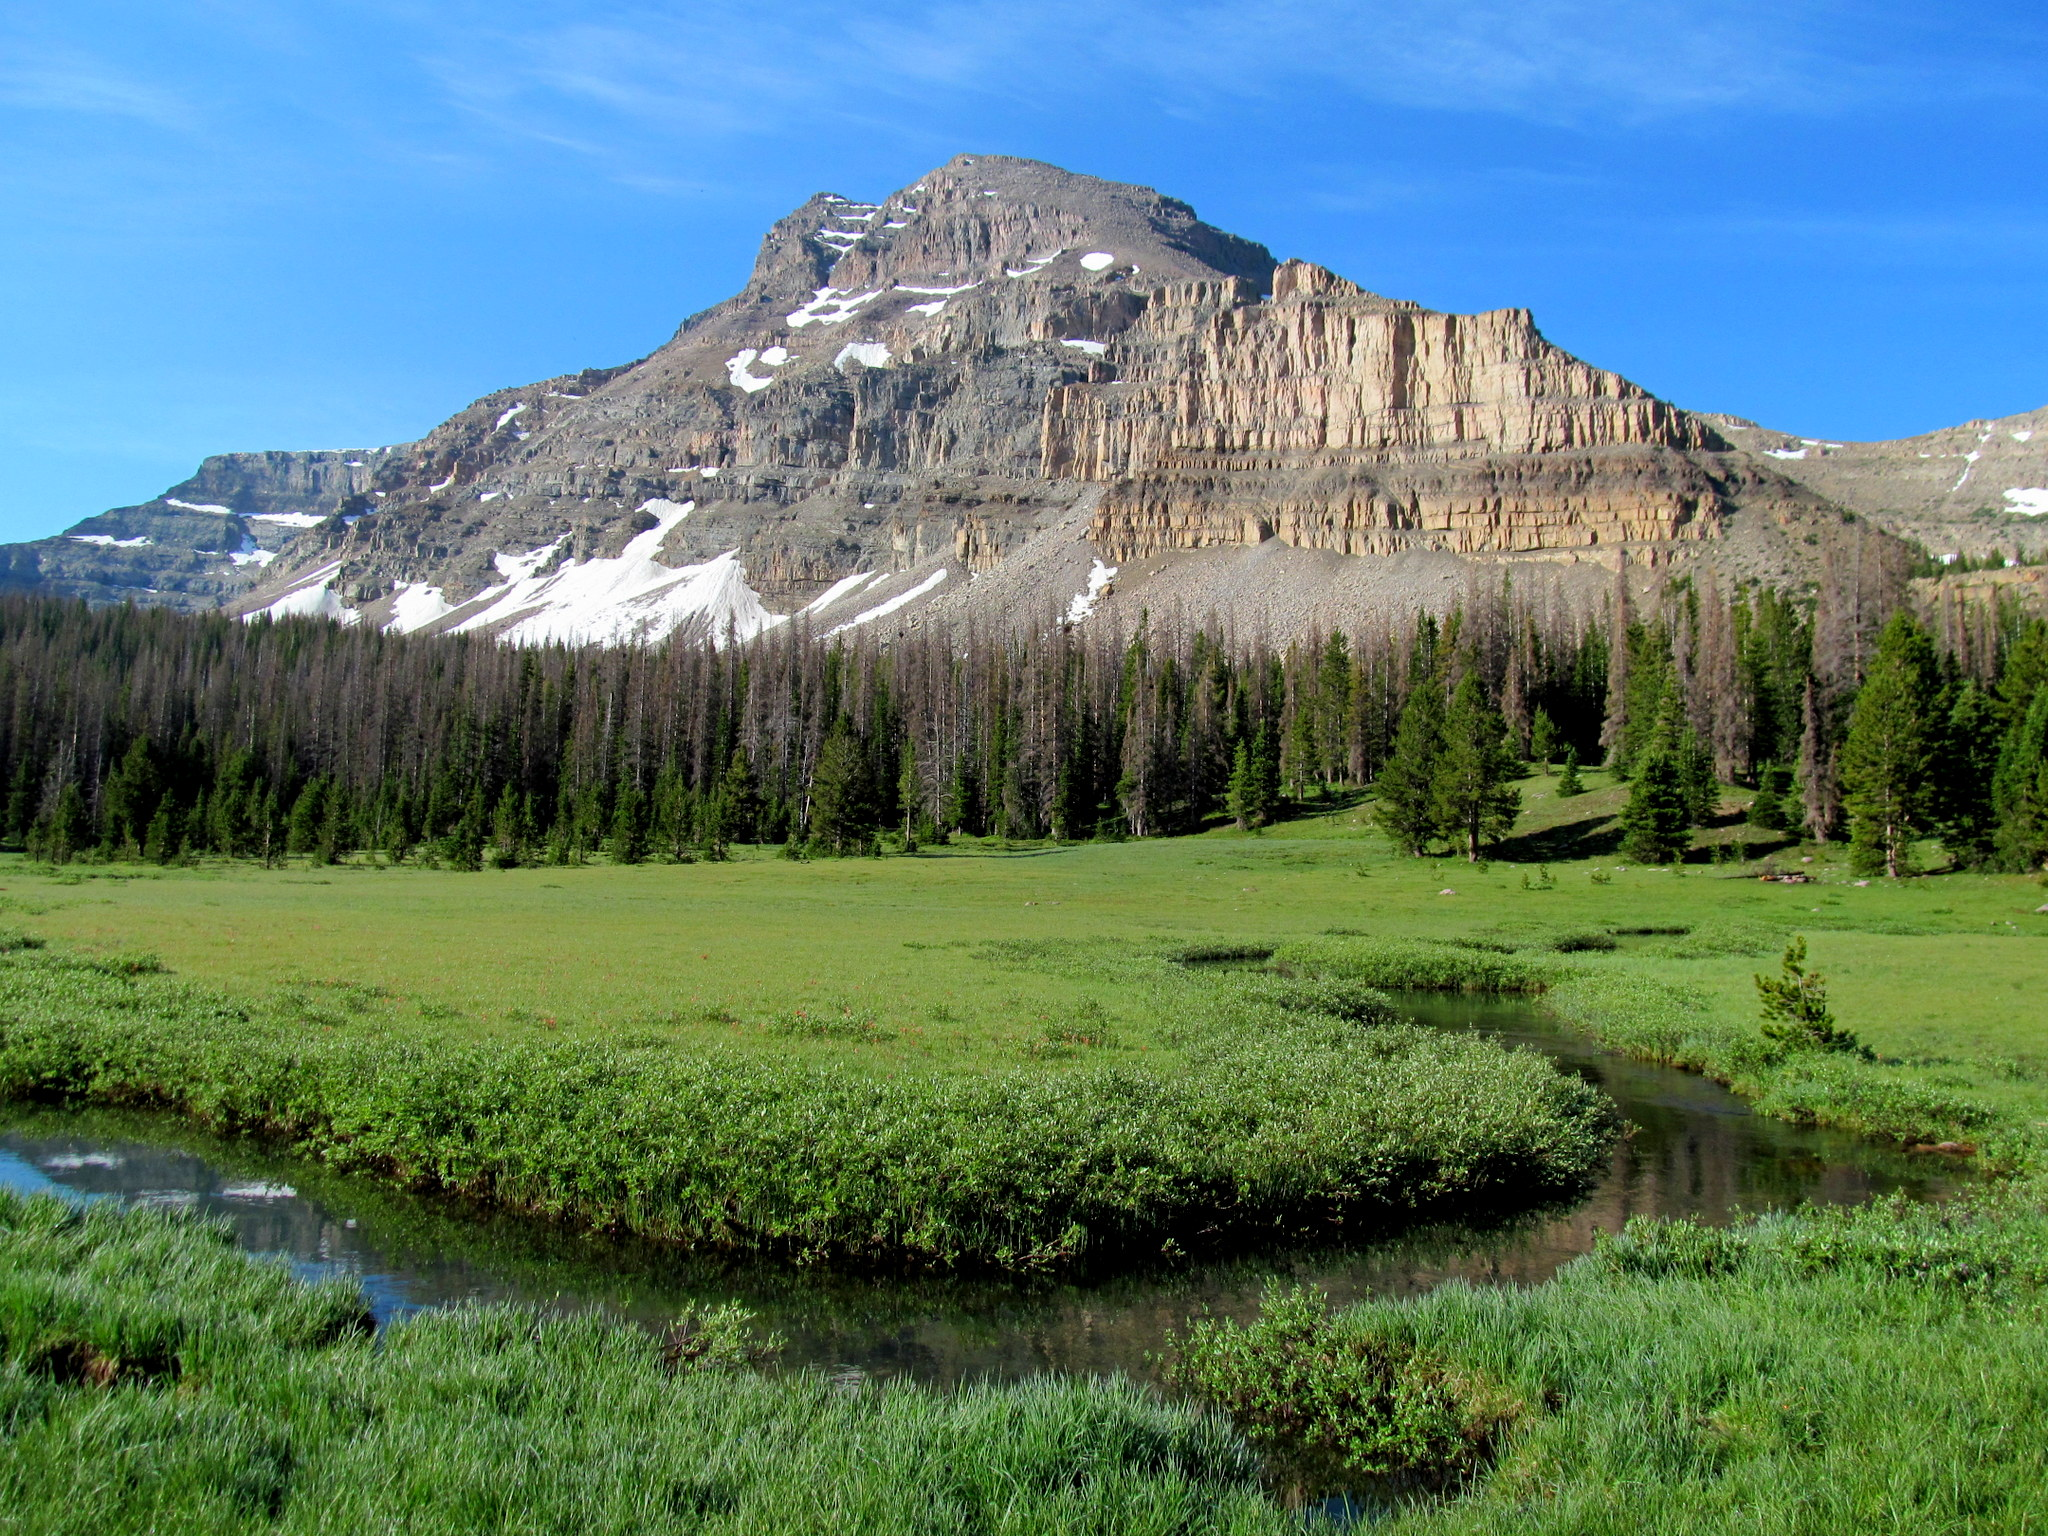 Photo: Ostler Peak over Amethyst Meadow